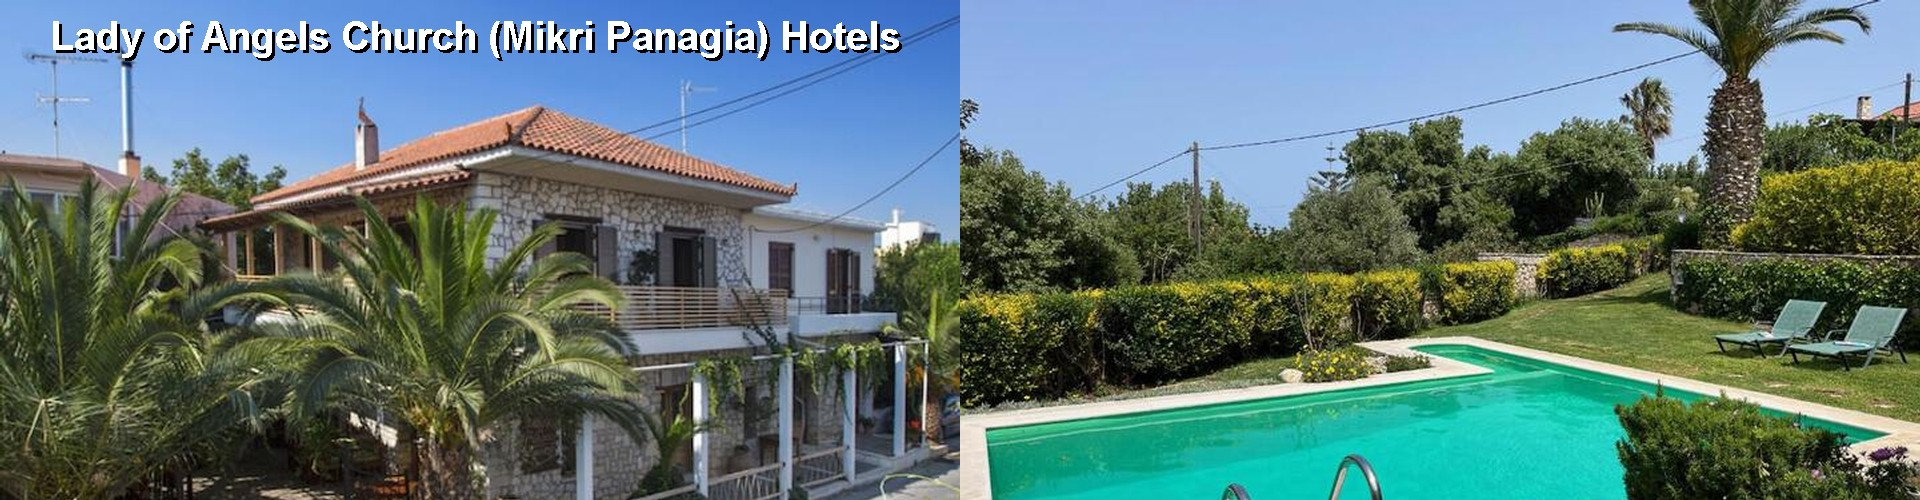 5 Best Hotels near Lady of Angels Church (Mikri Panagia)